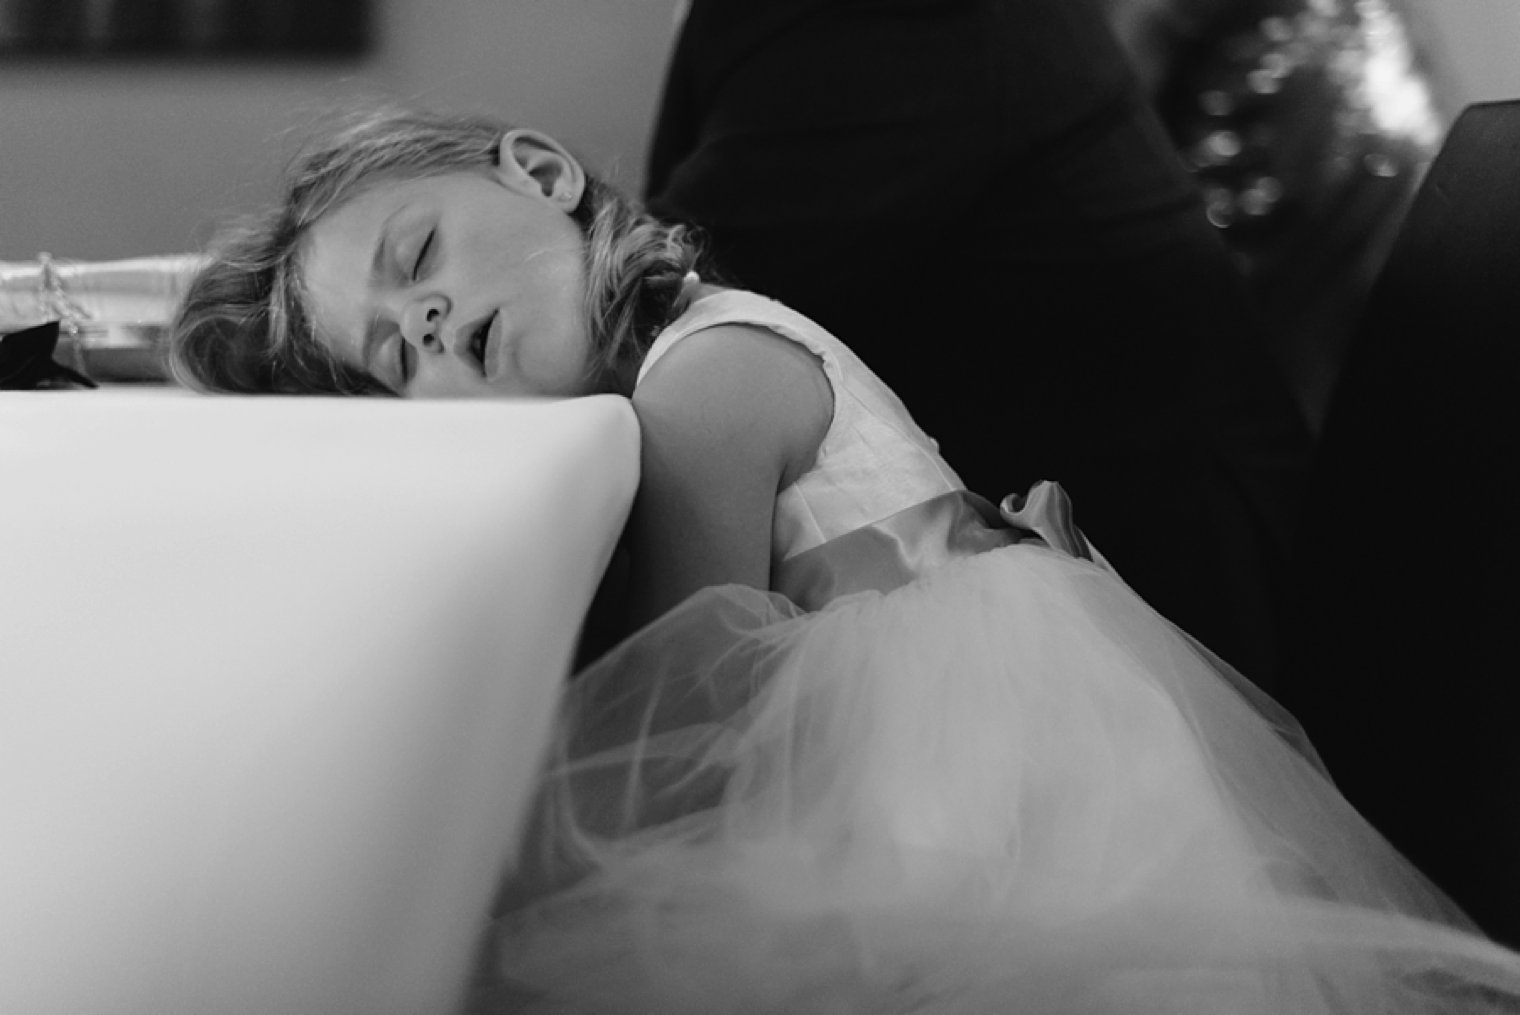 flowergirl sleeping during wedding